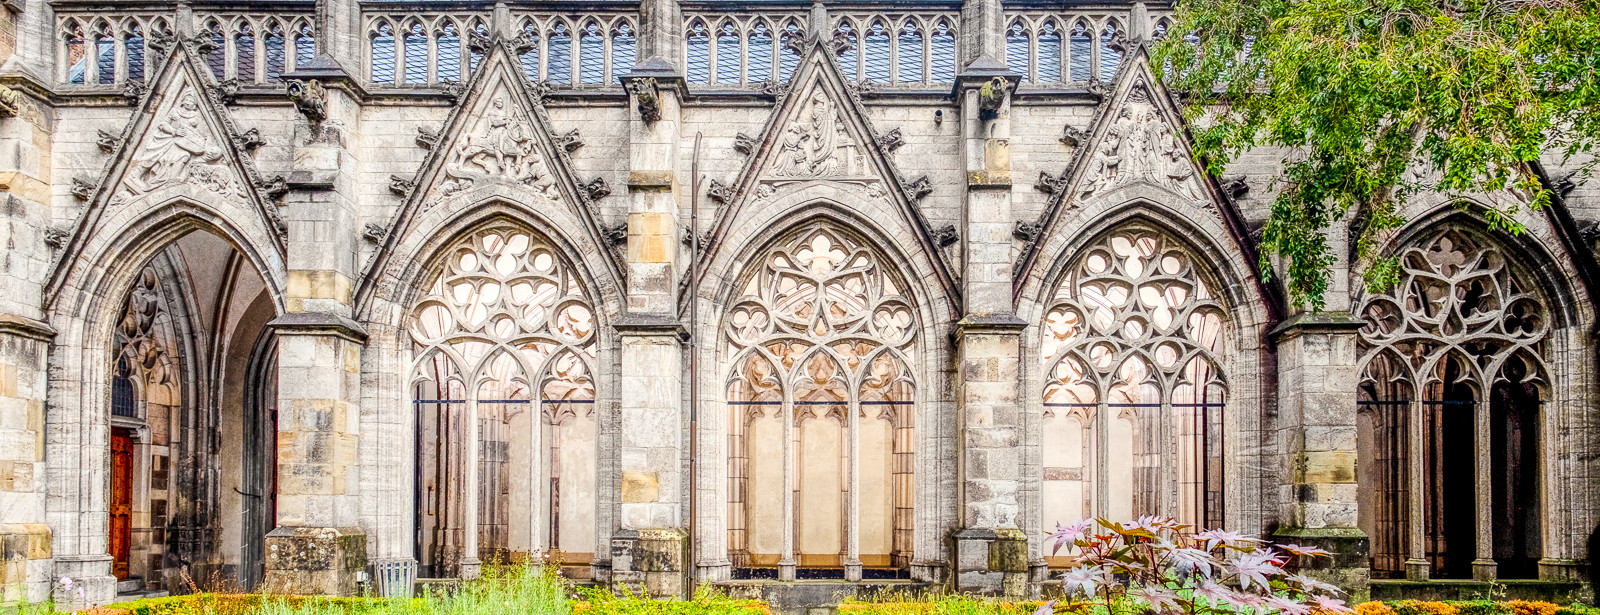 Churches discover utrecht